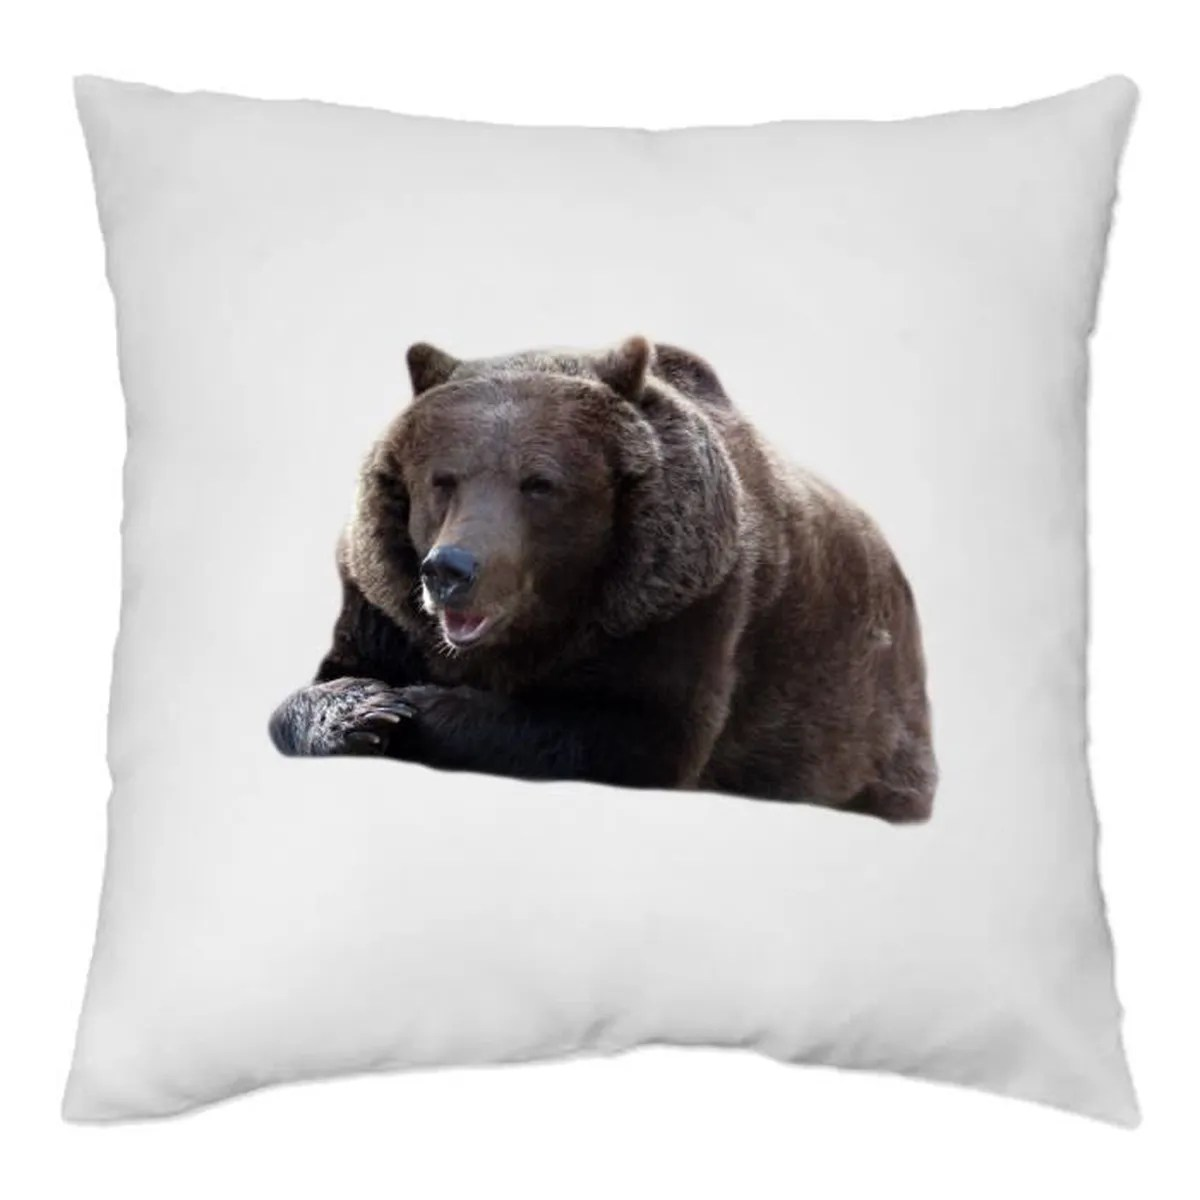 Coussin Ours   Coussin Câlin S Sloth L Ours